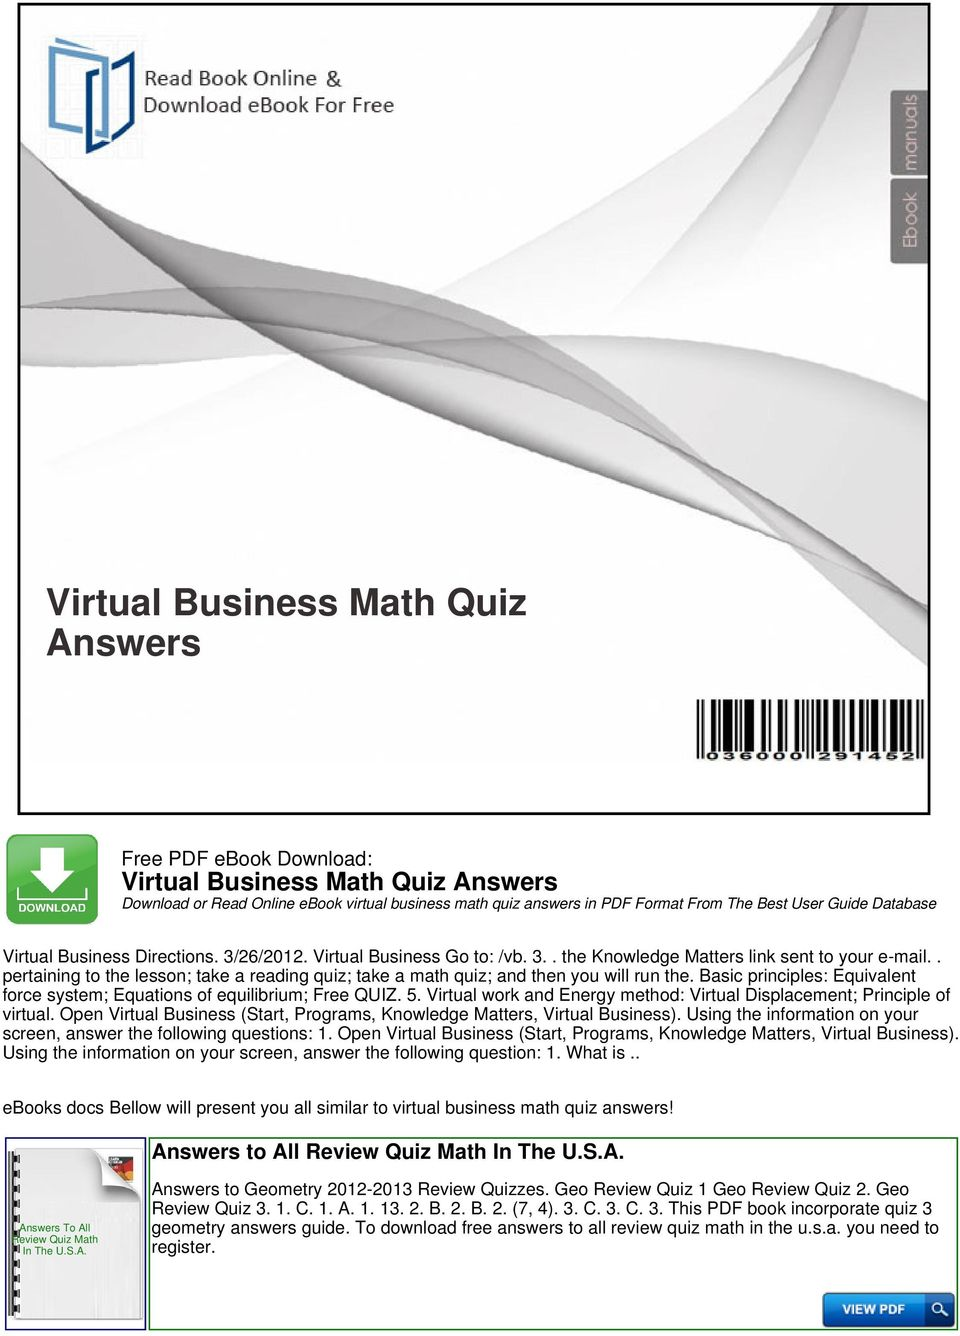 virtual business math quiz answers pdf